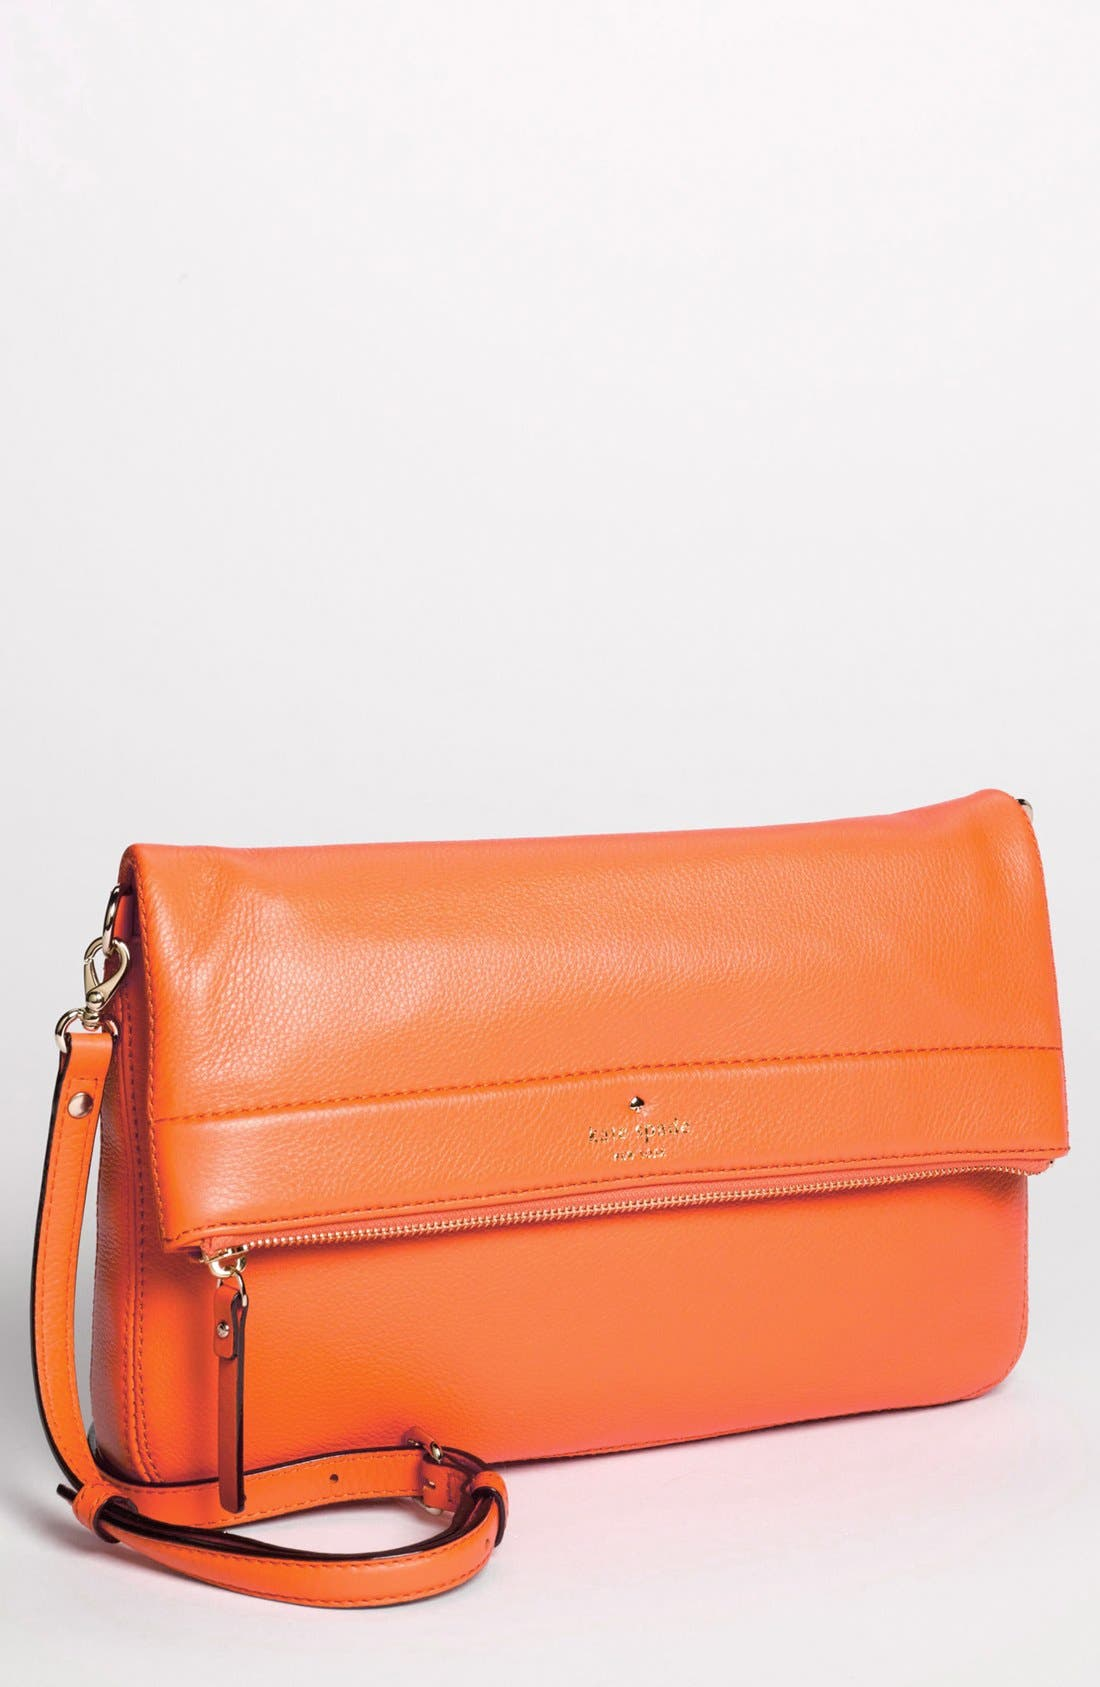 Main Image - kate spade new york 'mansfield clarke' shoulder bag (special purchase)